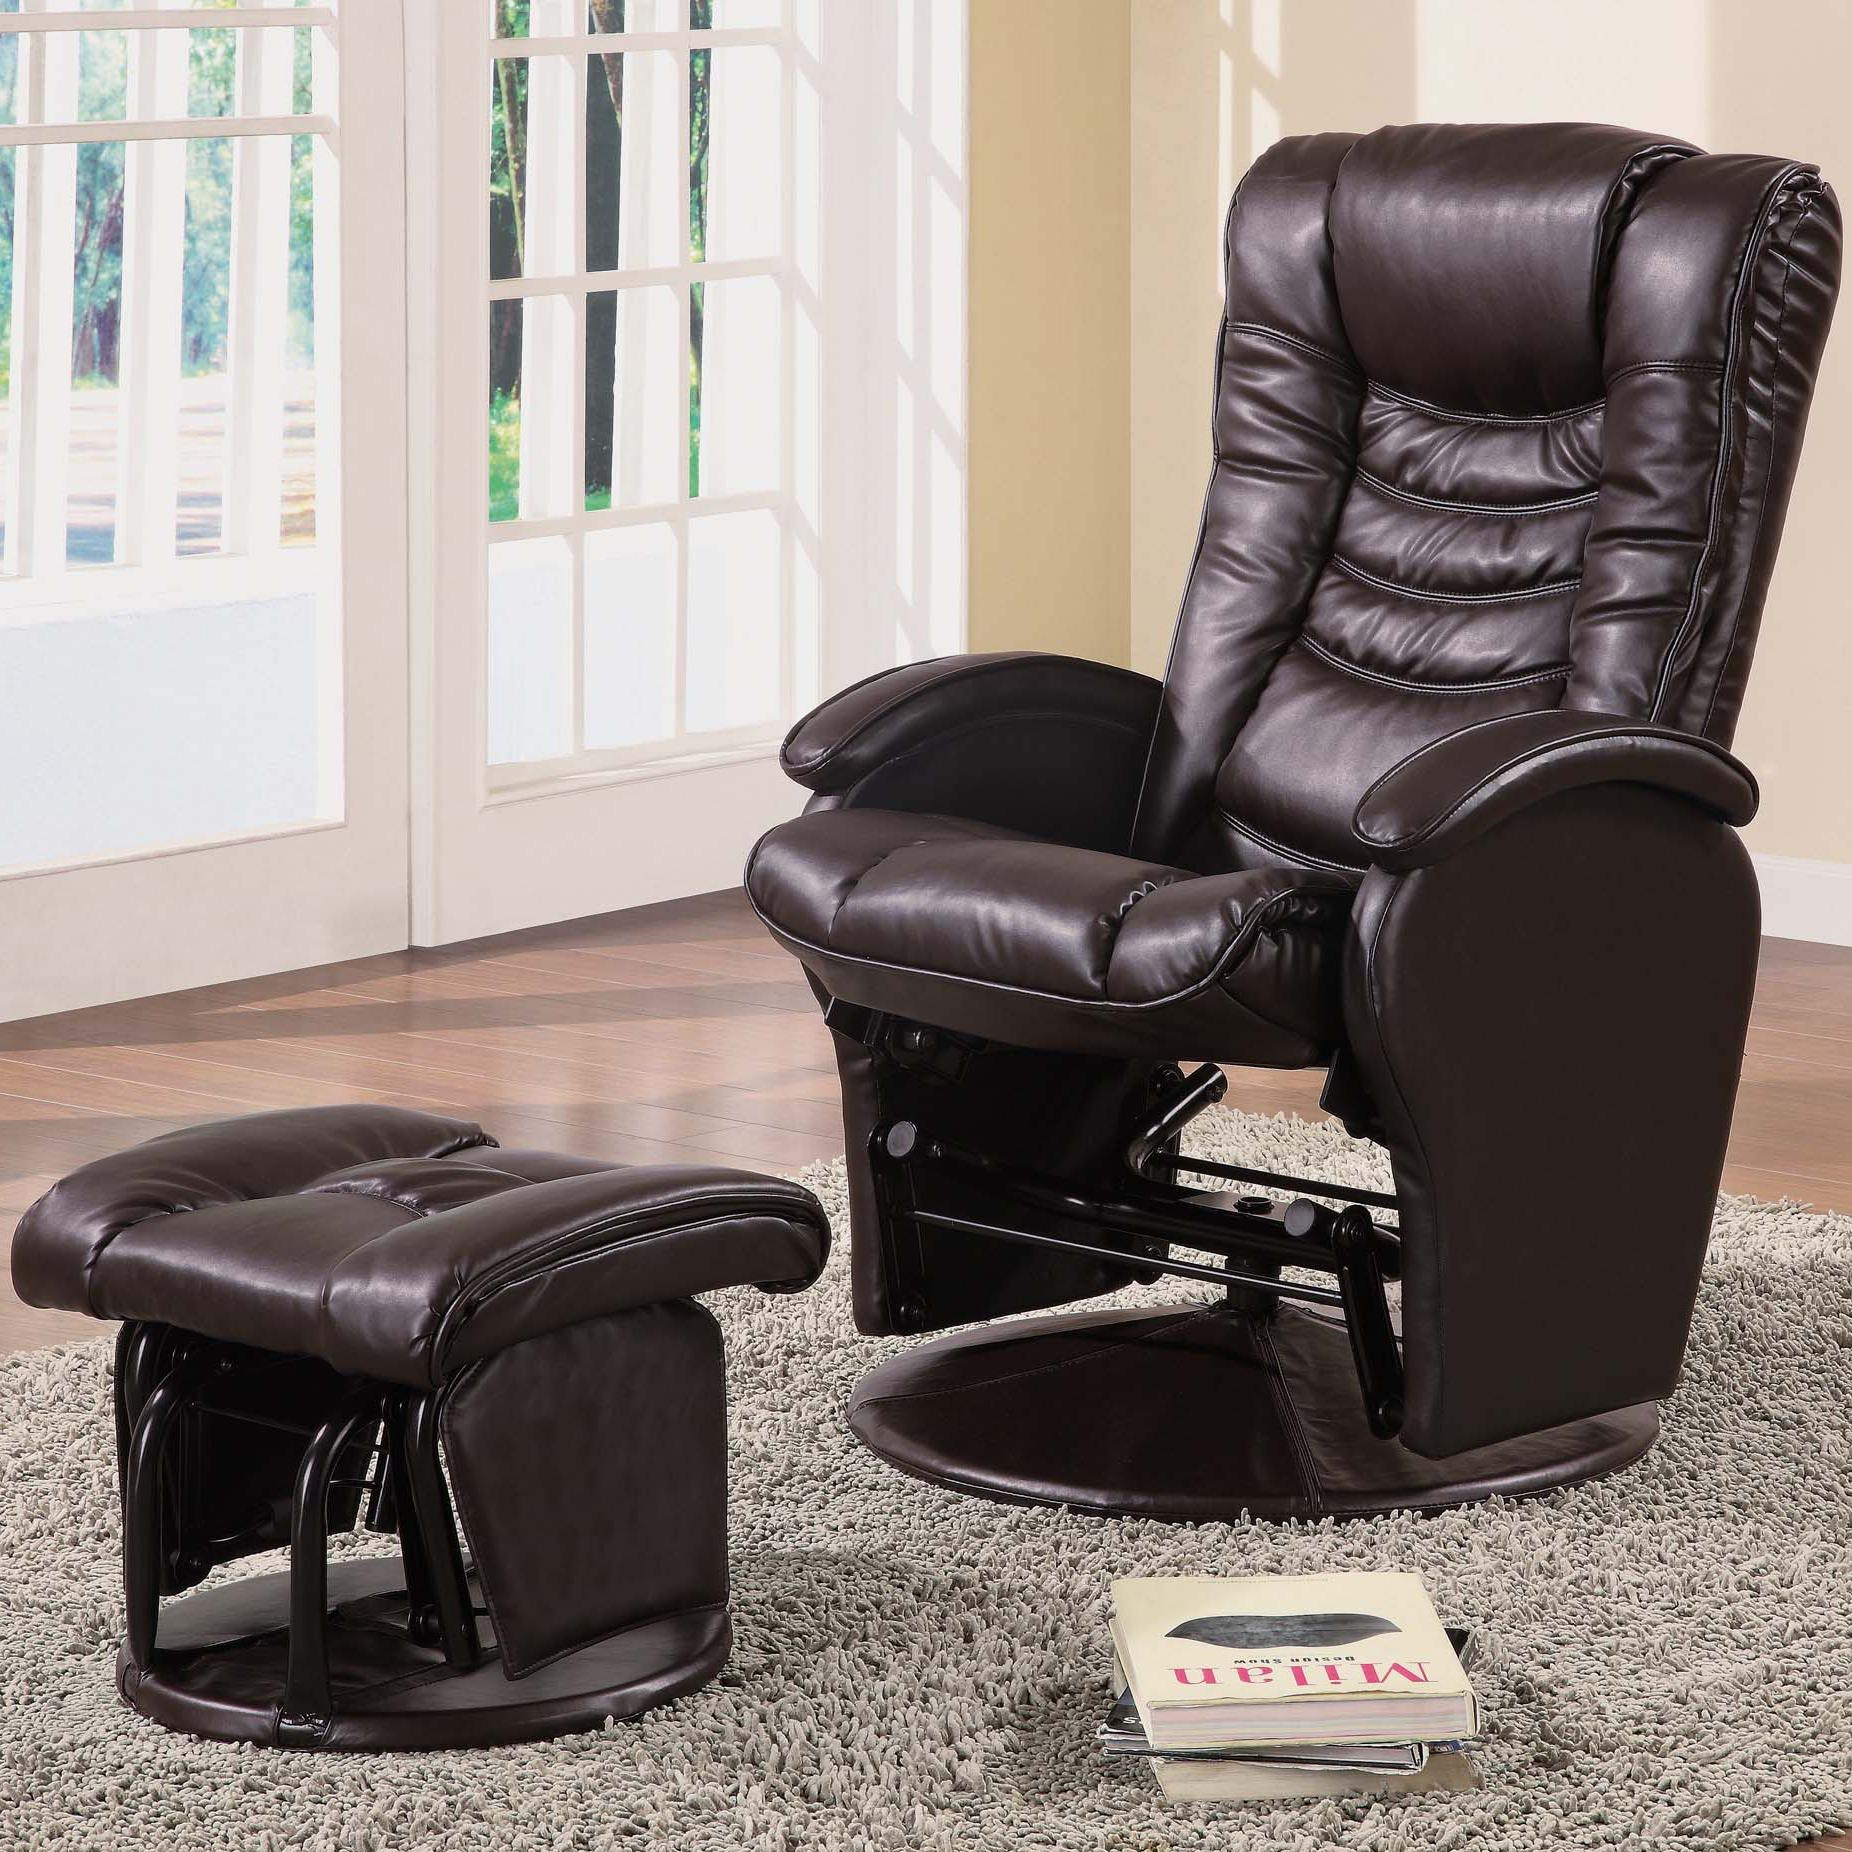 Coaster Recliners with Ottomans Casual Glider Recliner Chair with Matching Ottoman  sc 1 st  Prime Brothers Furniture & Coaster Recliners with Ottomans Casual Glider Recliner Chair with ... islam-shia.org